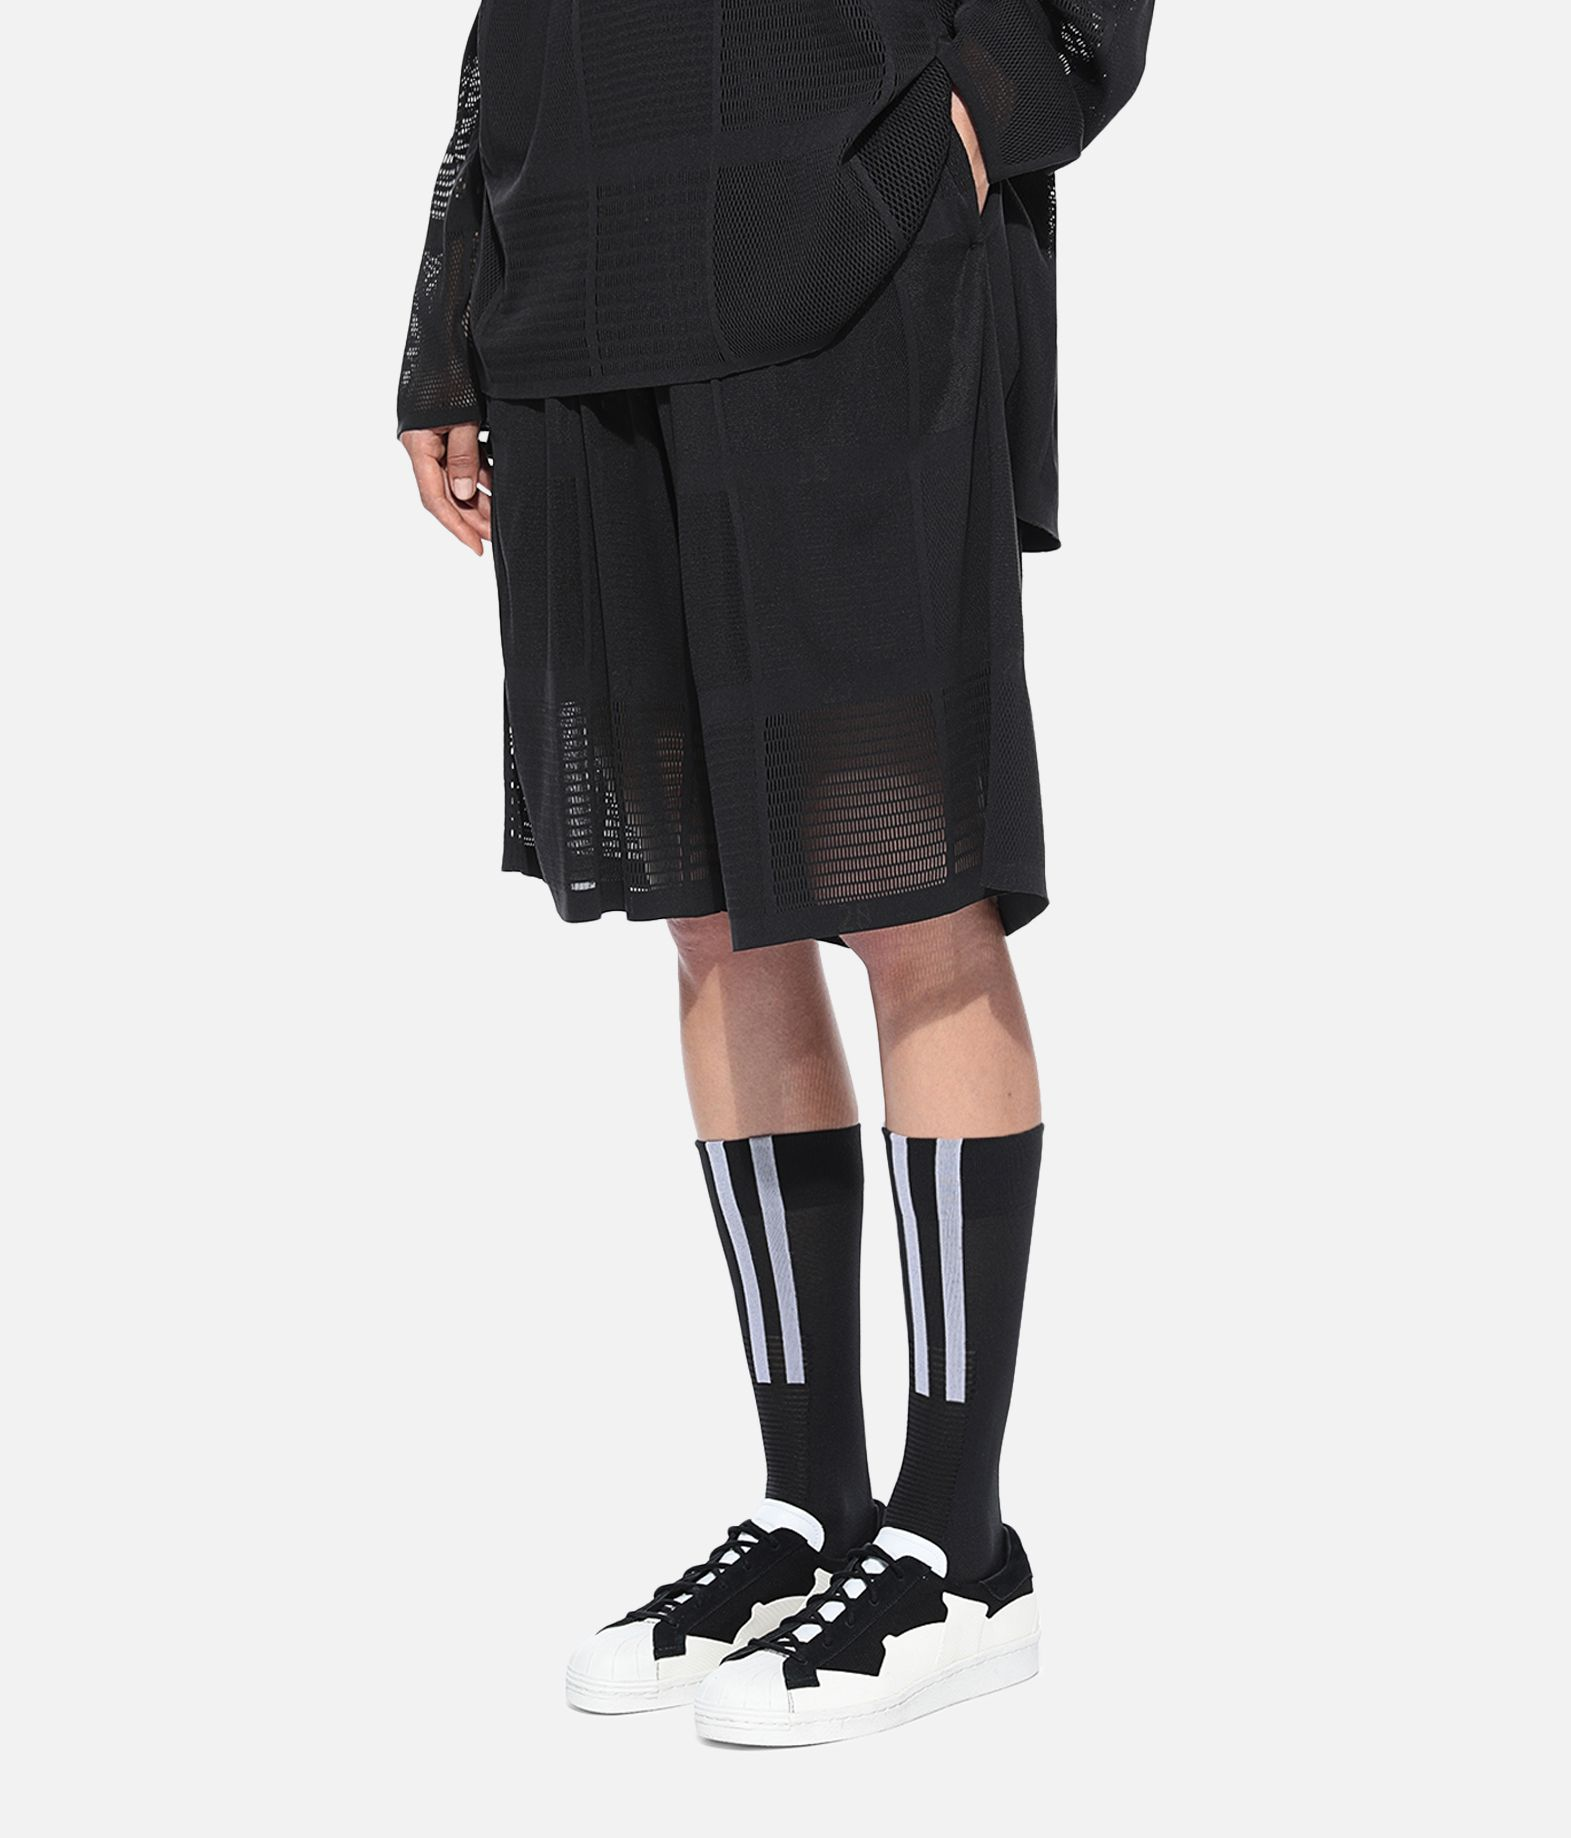 Y-3 Y-3 Patchwork Shorts Bermuda Woman e